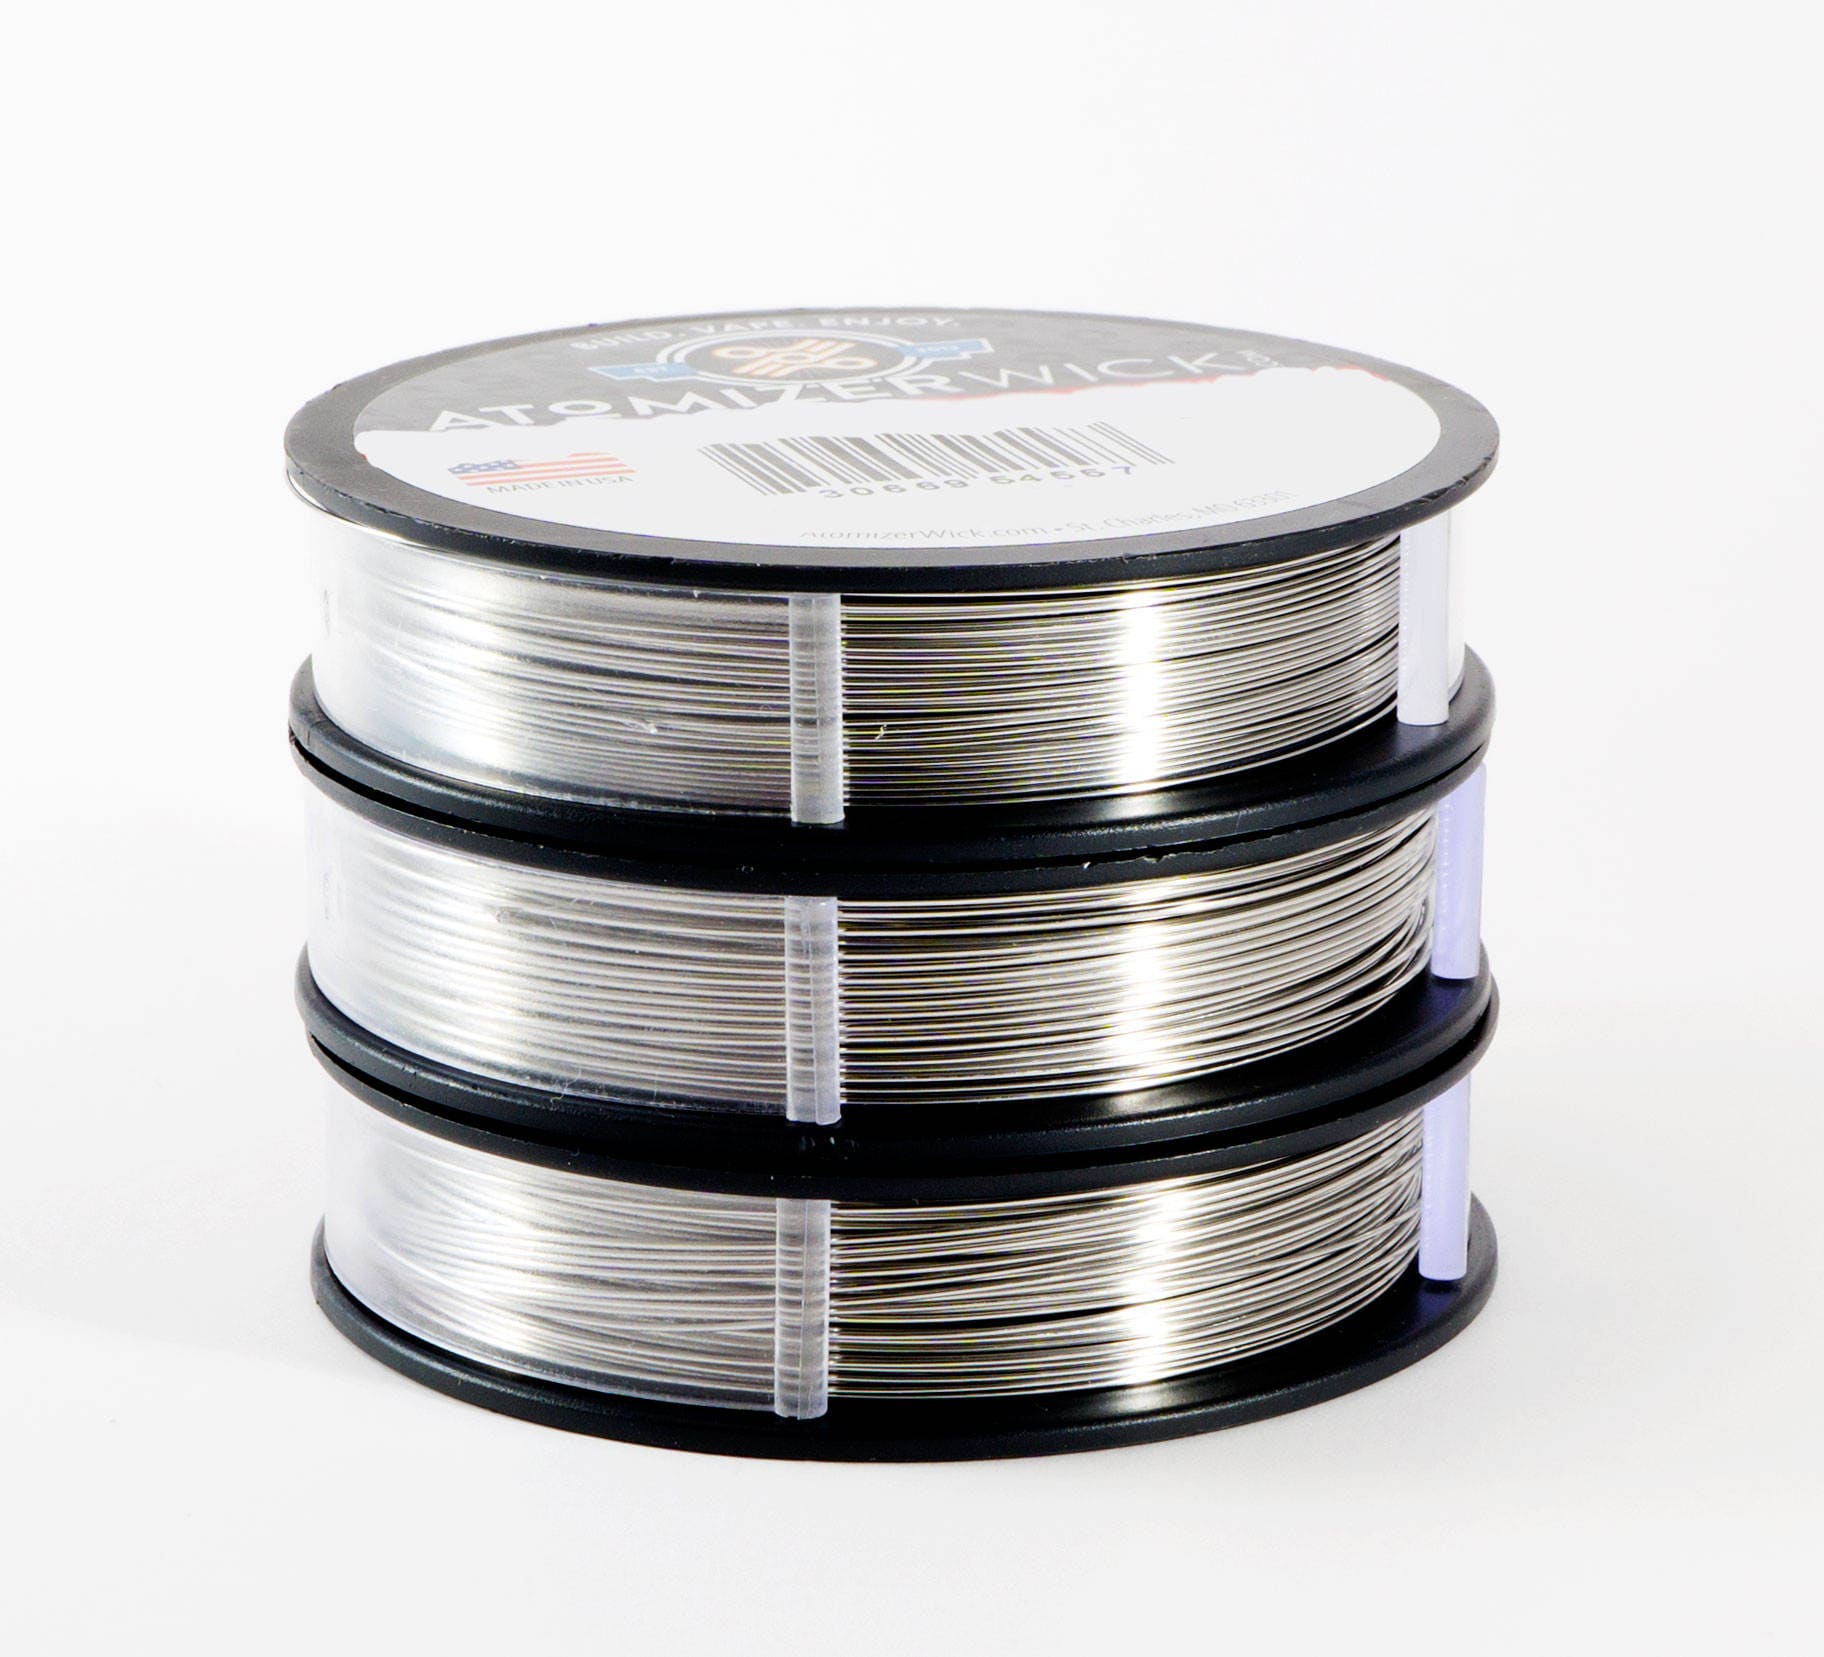 317L Stainless Steel Wire gauges 22, 24, 26, 28, 30, 32, 34, 38, 40 ...